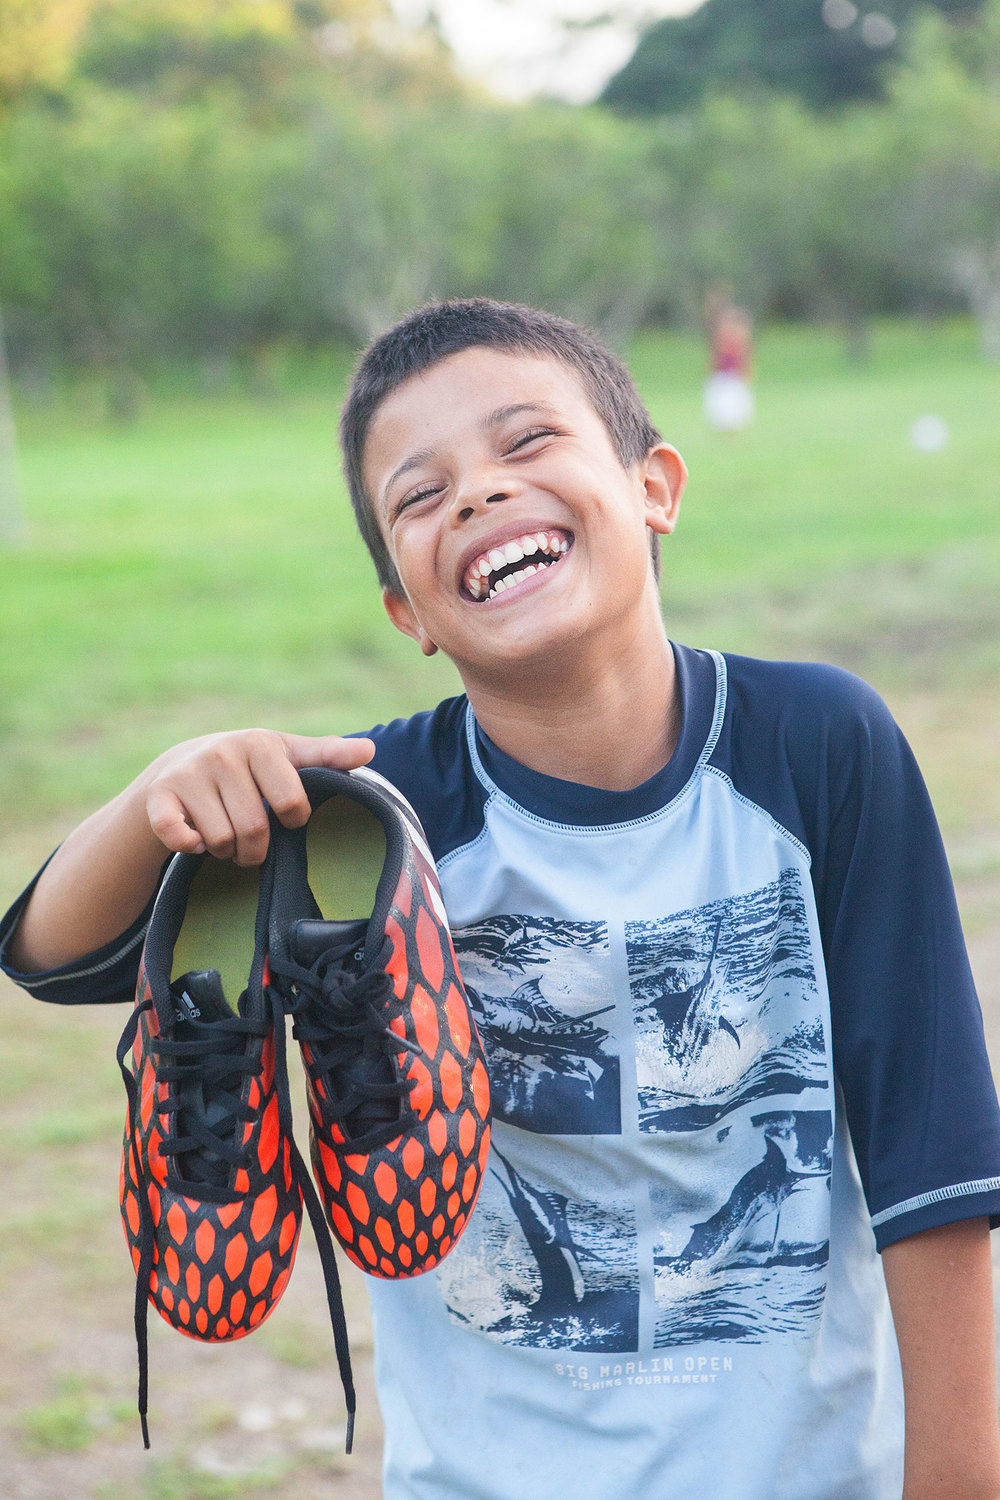 Franklin excited about finally receiving soccer shoes!